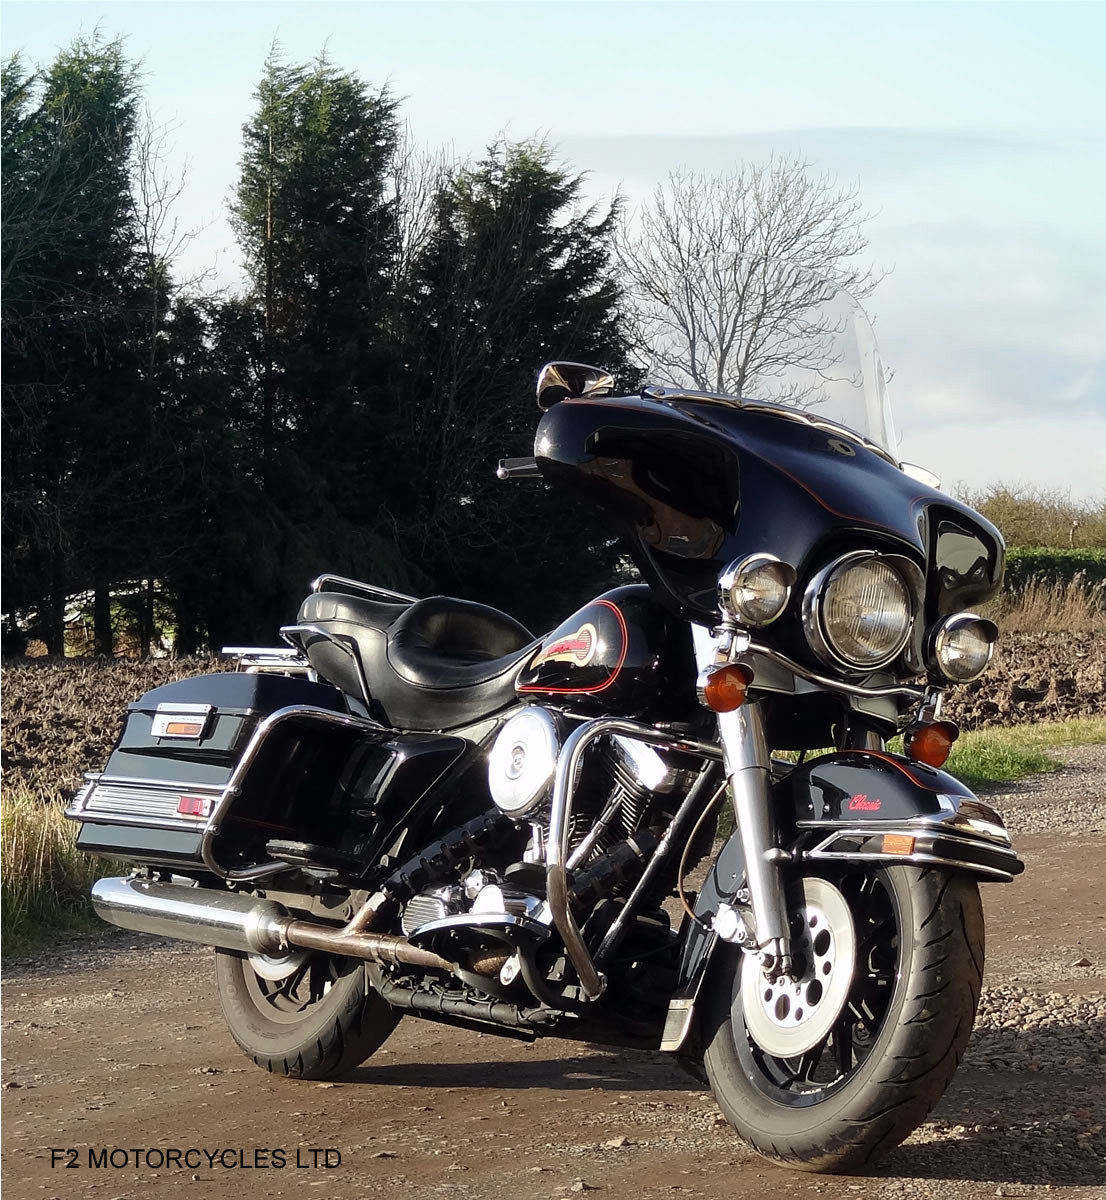 1995 Harley Davidson FLH Electra Glide 1340 Mot, serviced, ready SOLD (picture 6 of 6)